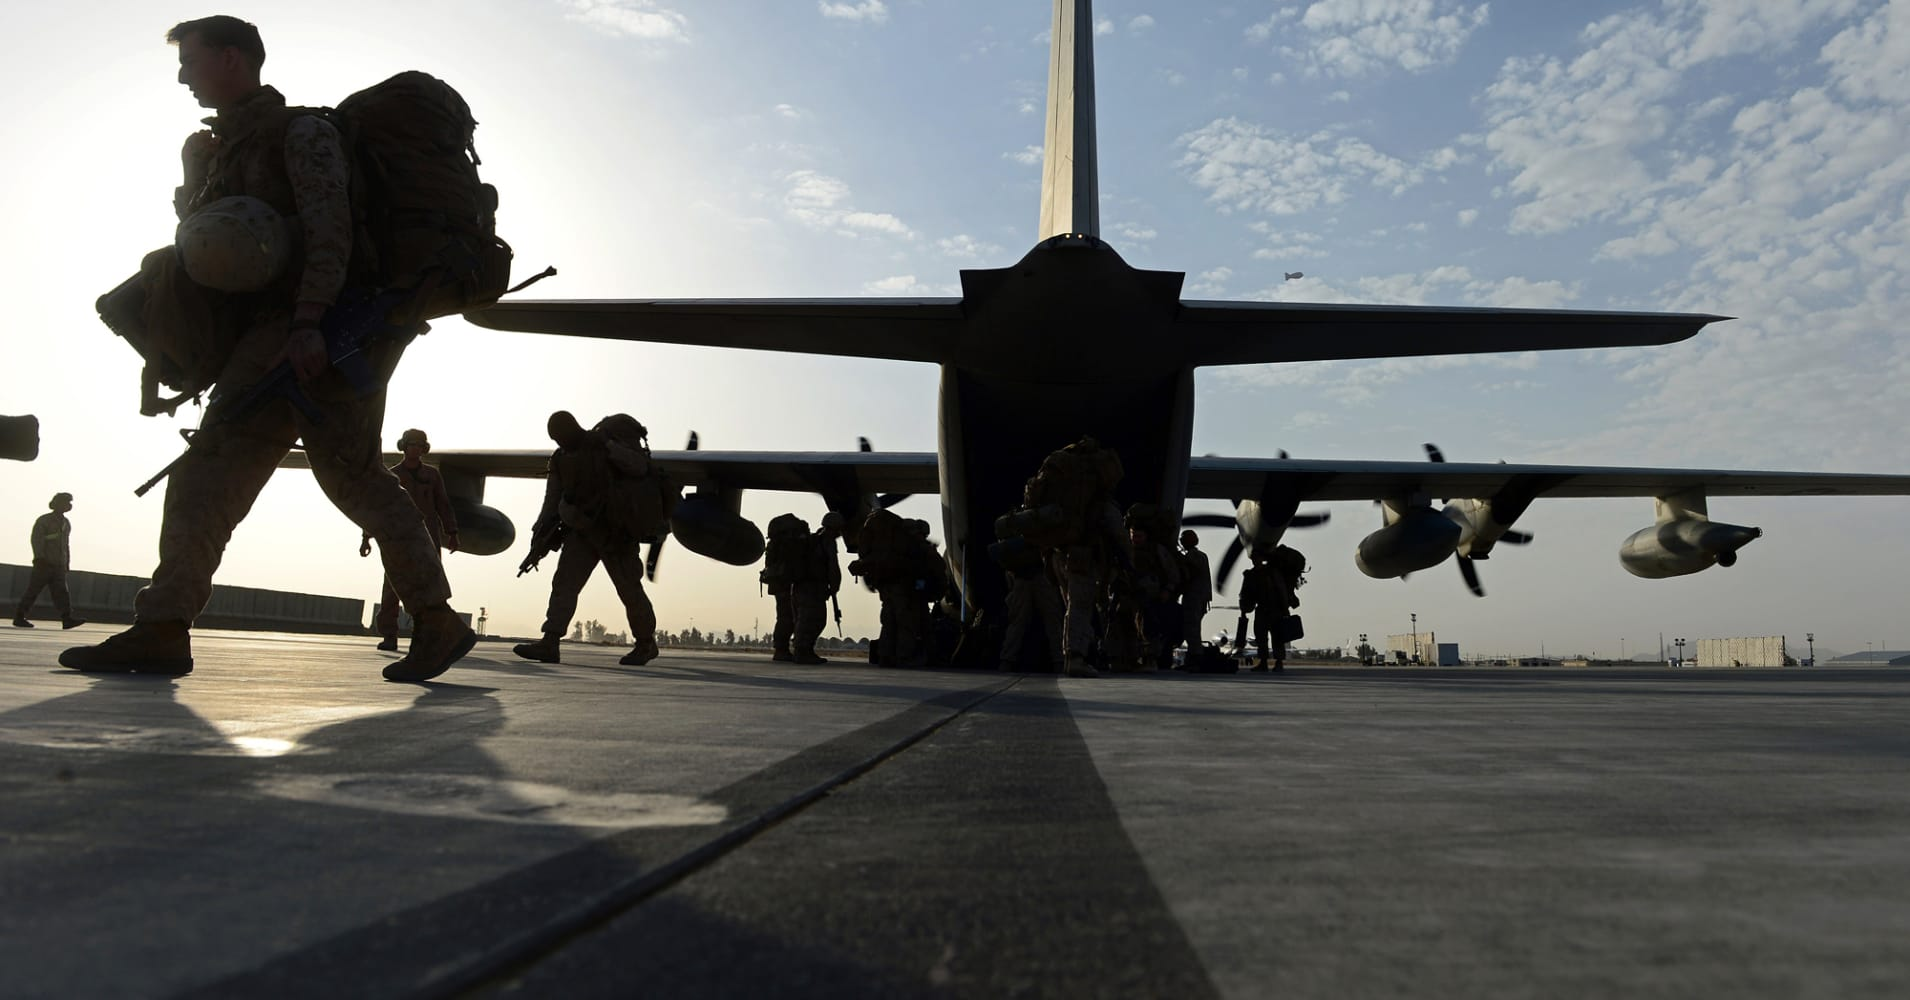 Trump's 2019 defense budget request seeks more troops and firepower to deter threats